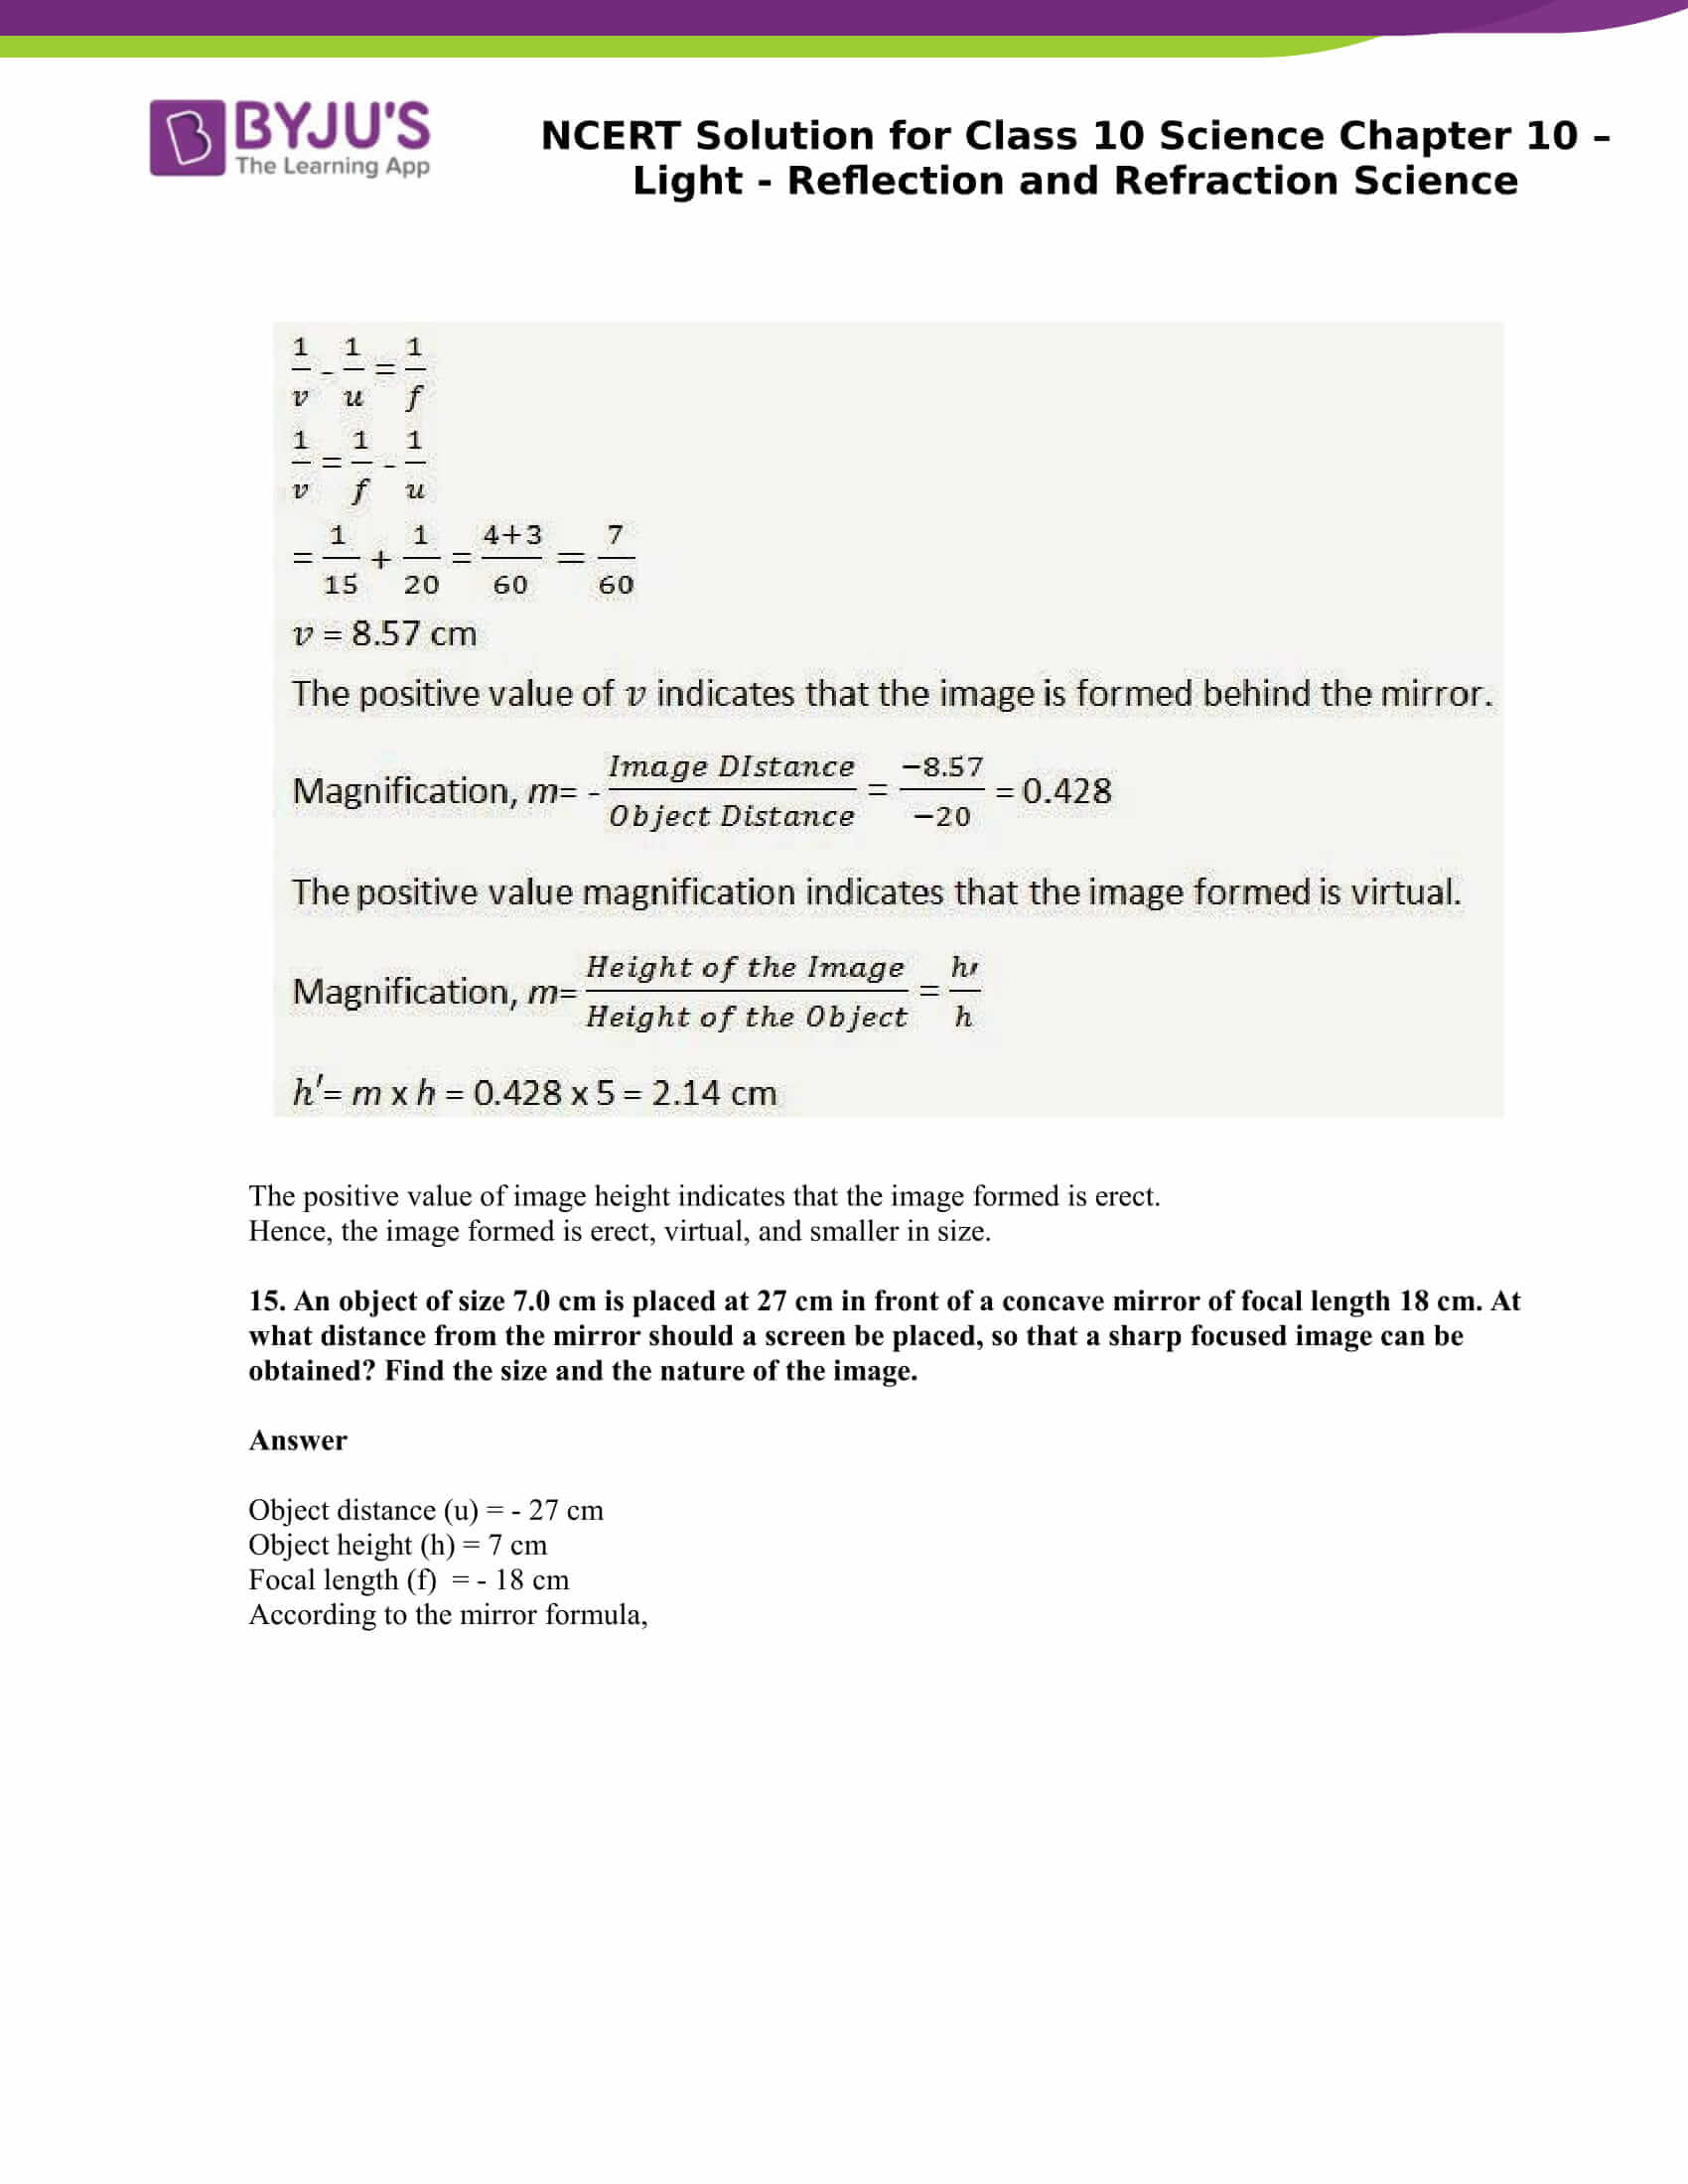 NCERT Solution for CBSE Class 10 Science Chapter 10 Light Reflection and Refraction Science Part 11